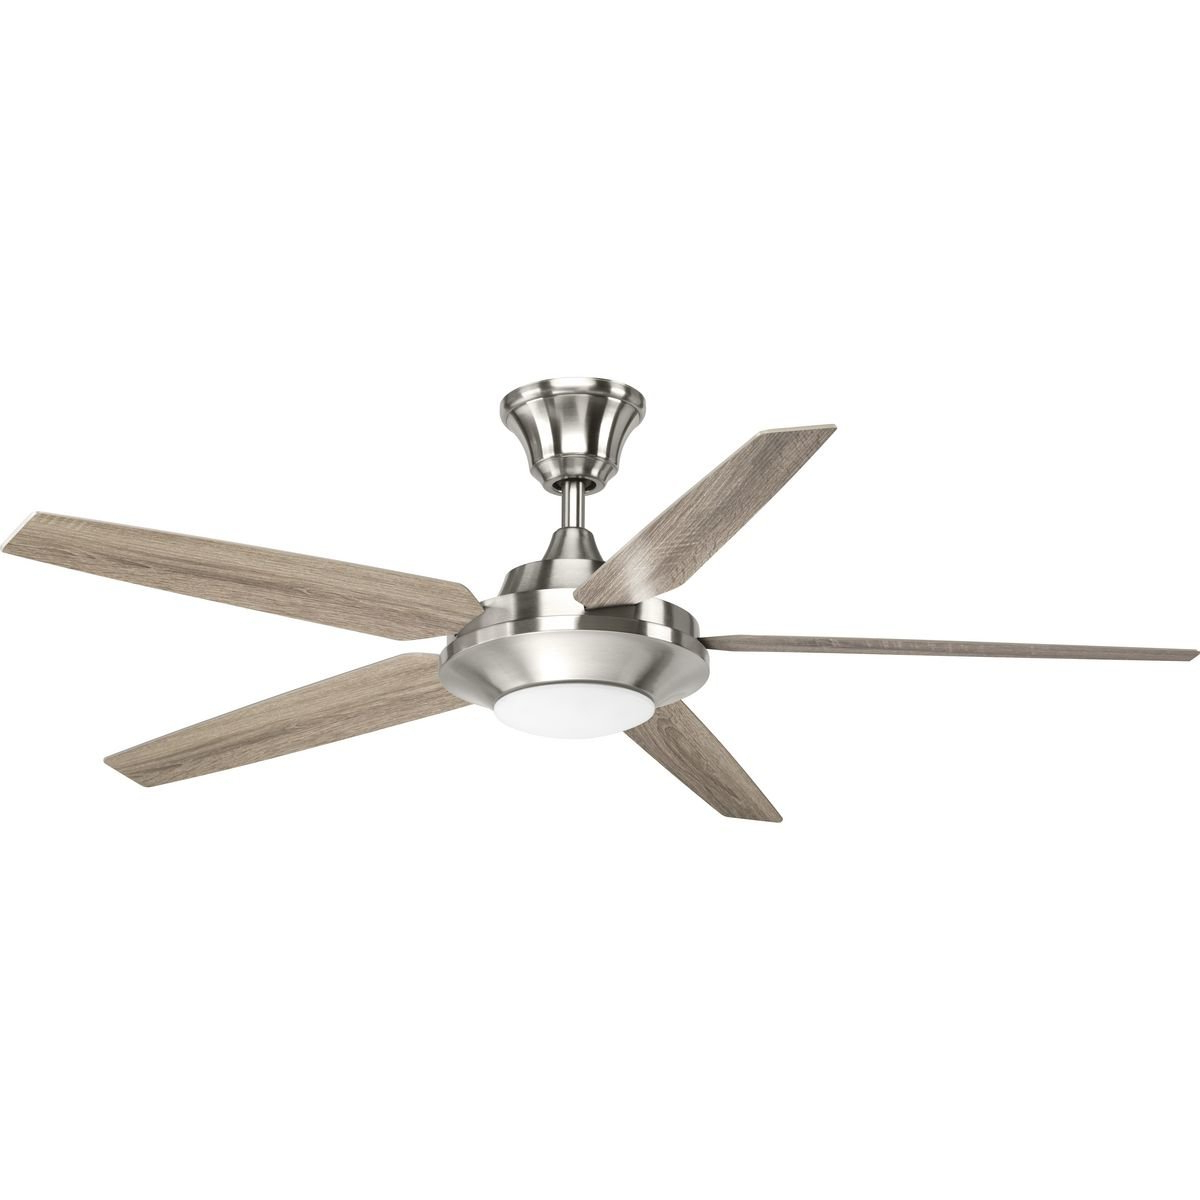 "Red Barrel Studio 54"" Searles 5 Blade Led Ceiling Fan With Remote, Light  Kit Included Throughout Well Known Valerian 5 Blade Ceiling Fans (View 14 of 20)"